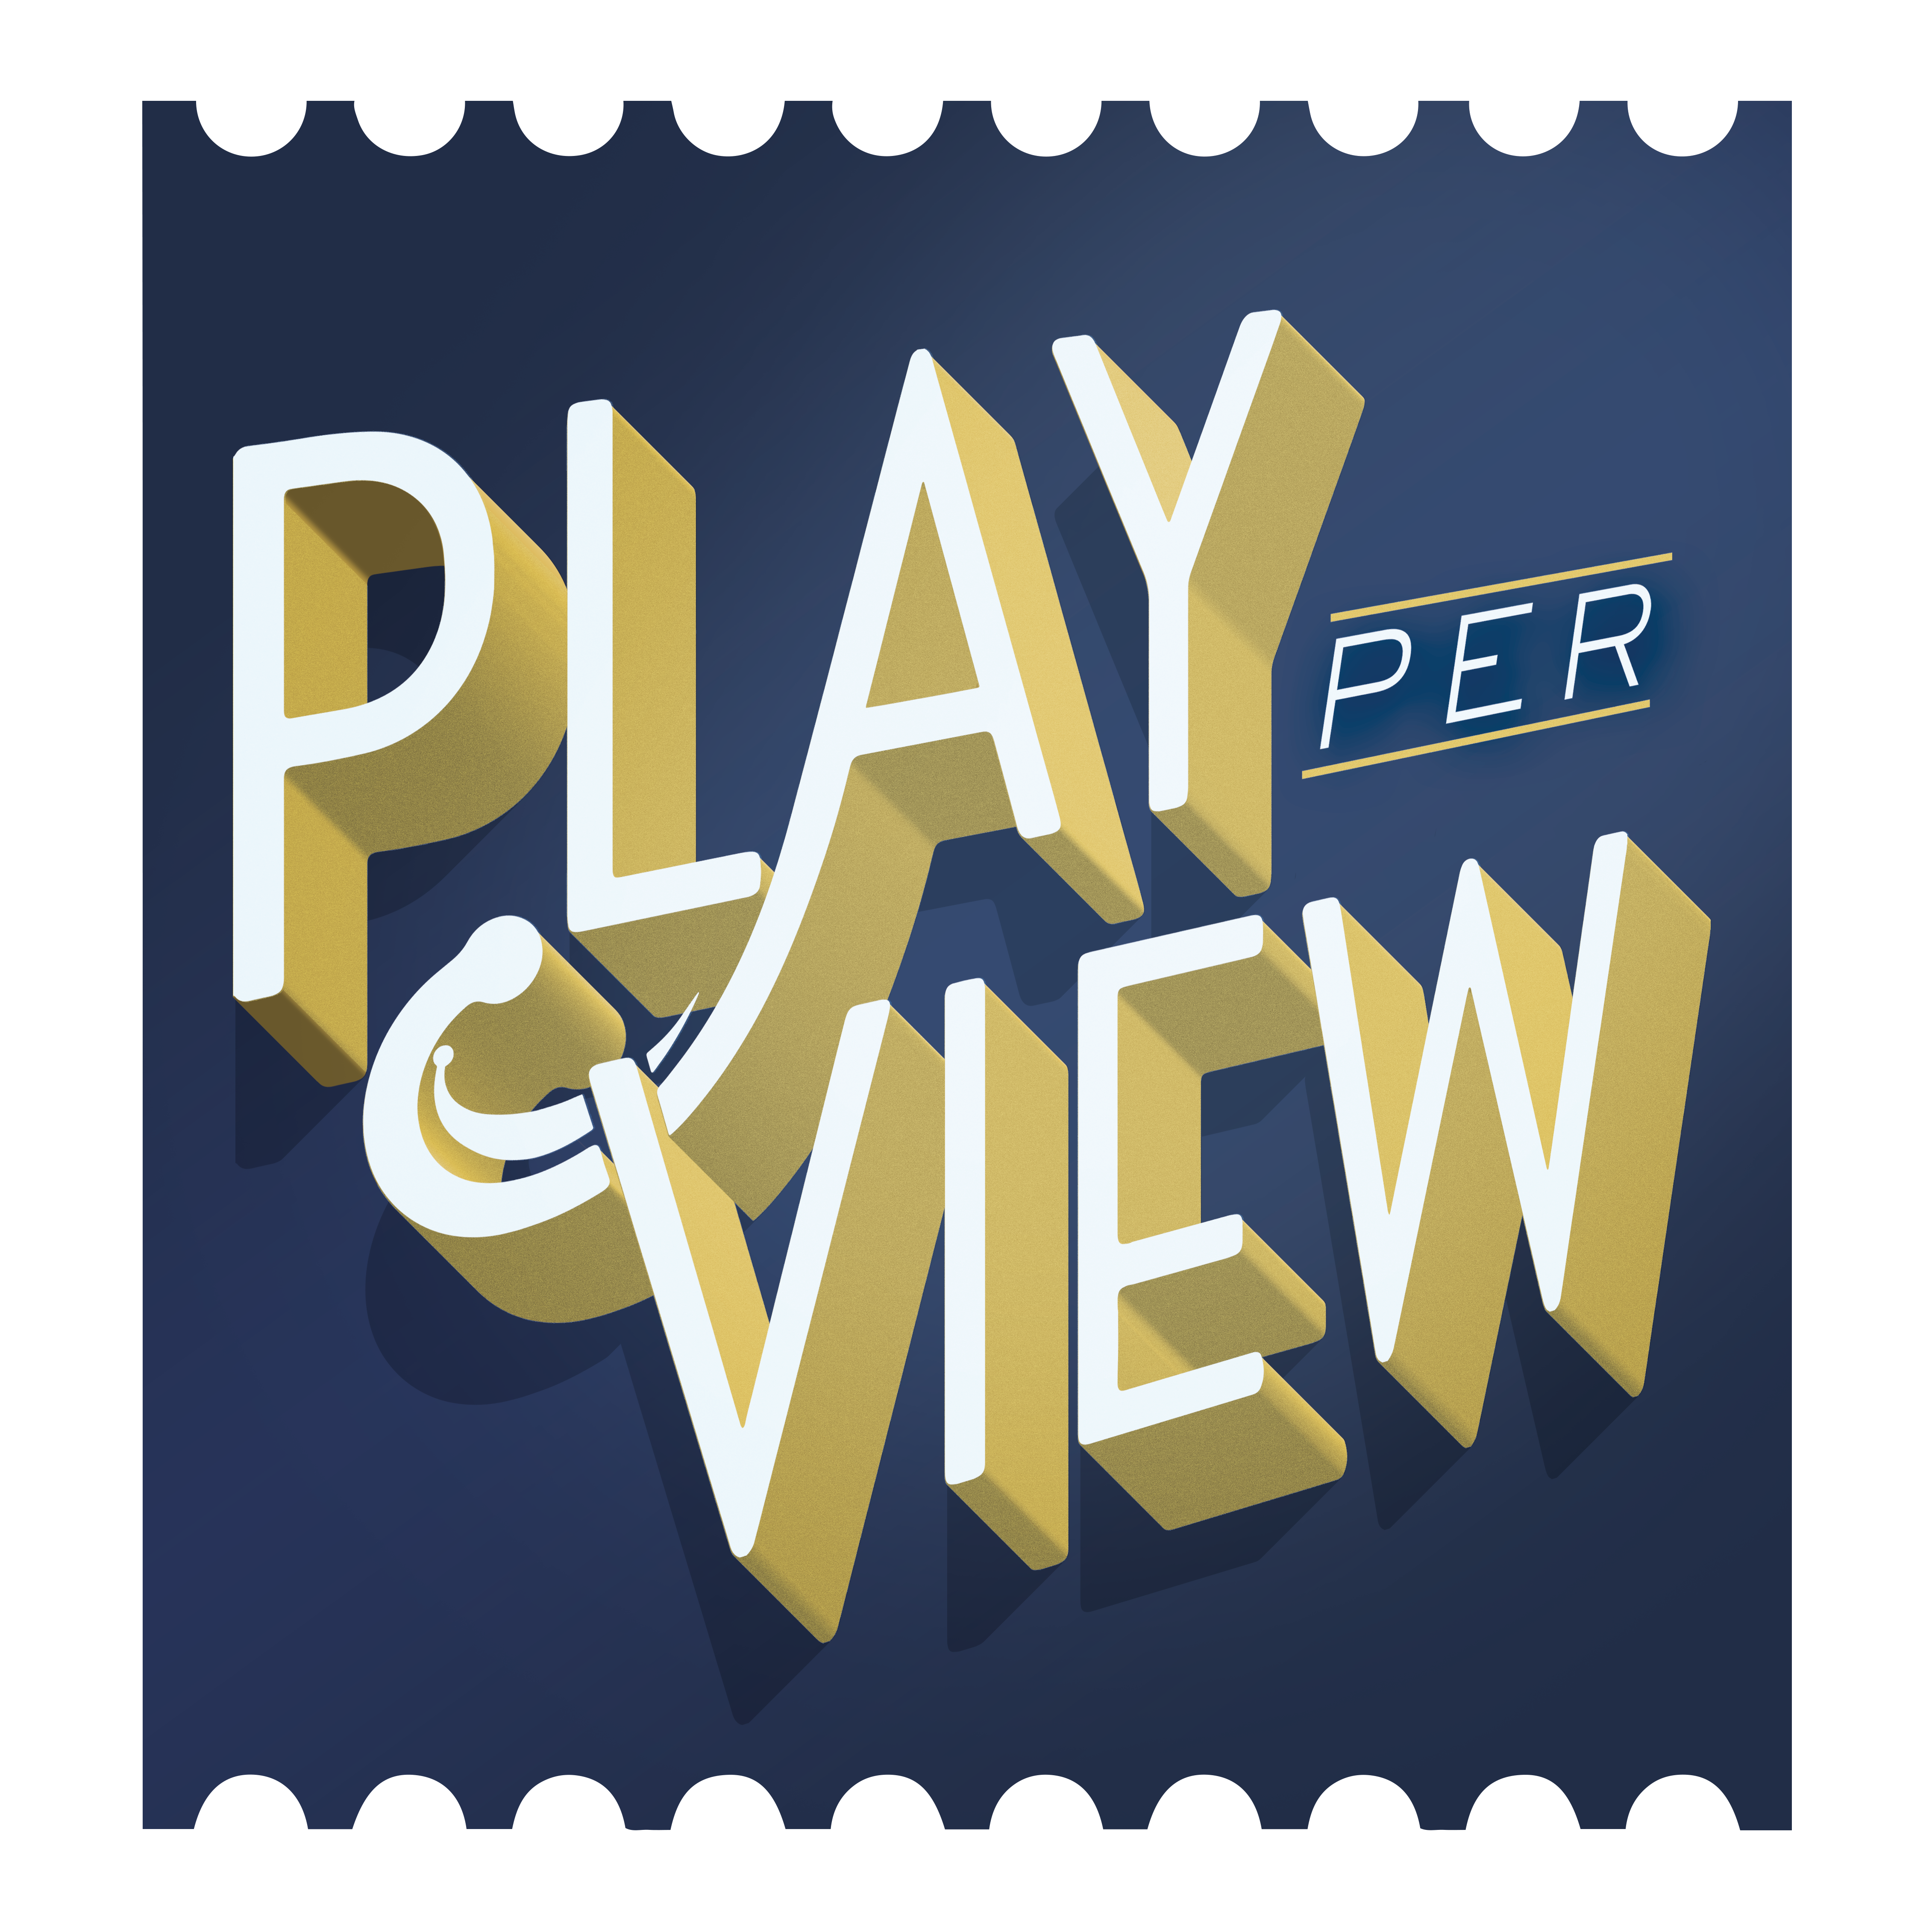 New Theatrical Live Streaming Initiative Play Perview Launches March 26 Playbill